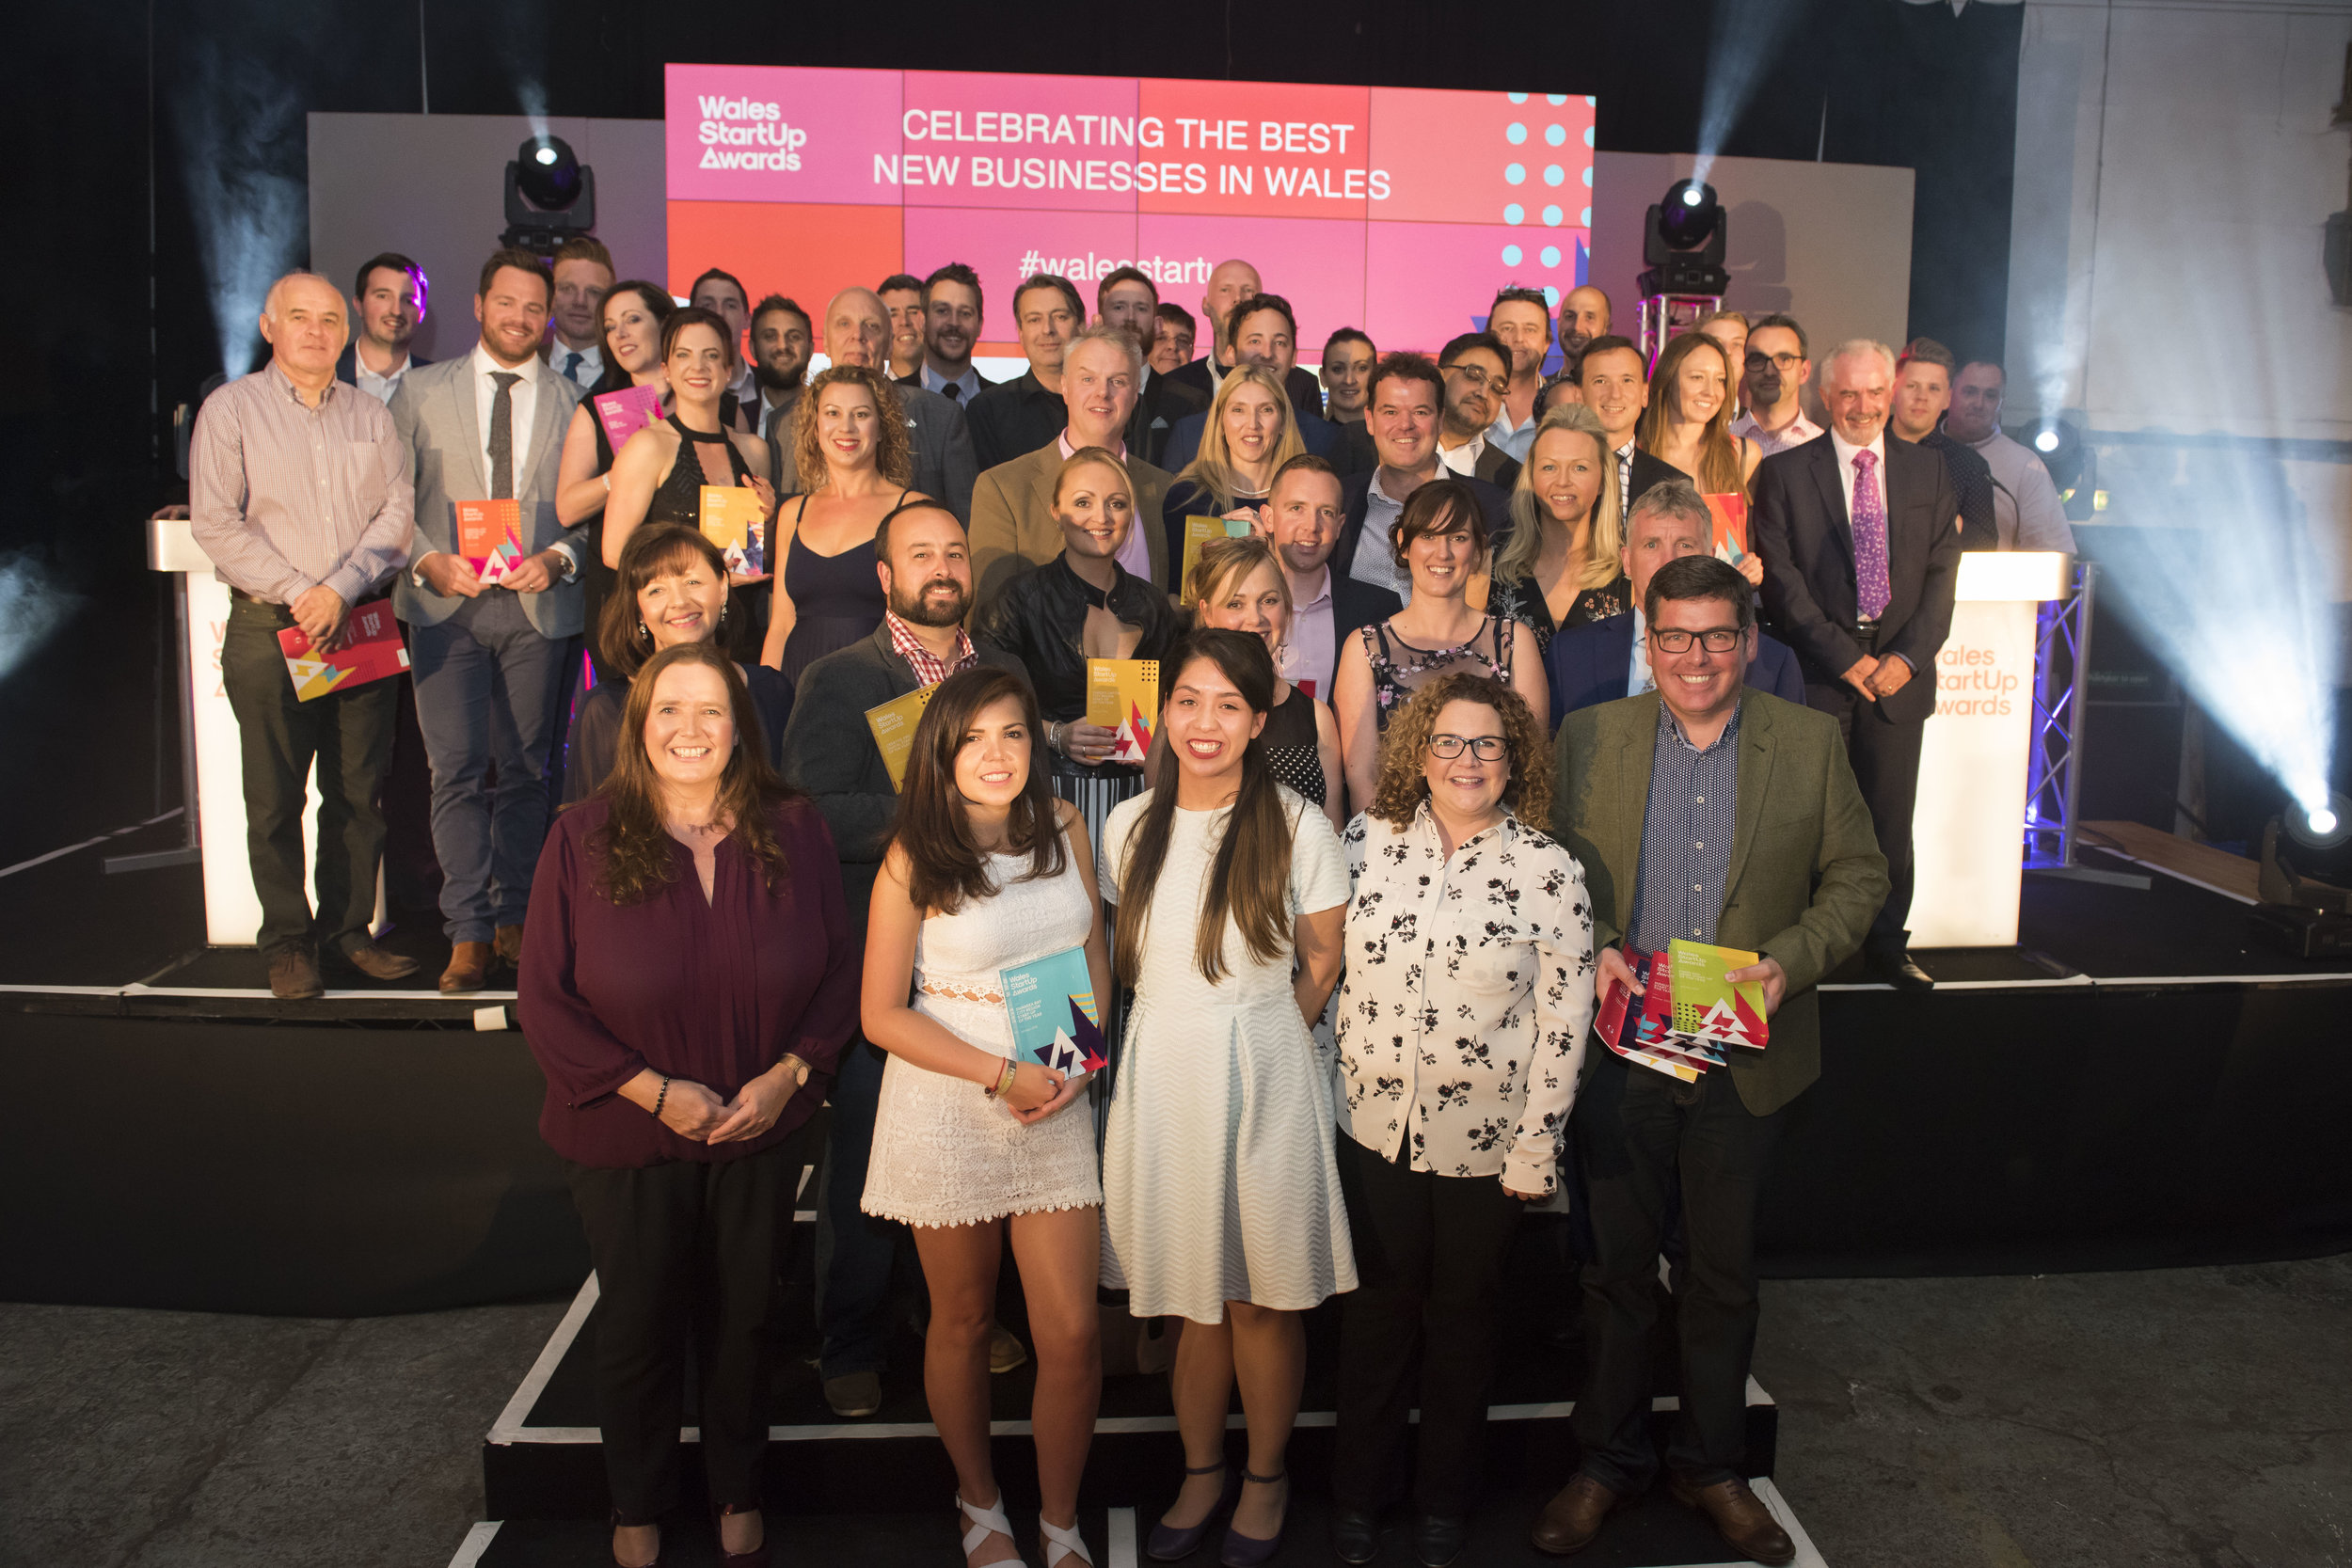 Winners of the 2016 Wales StartUp Awards